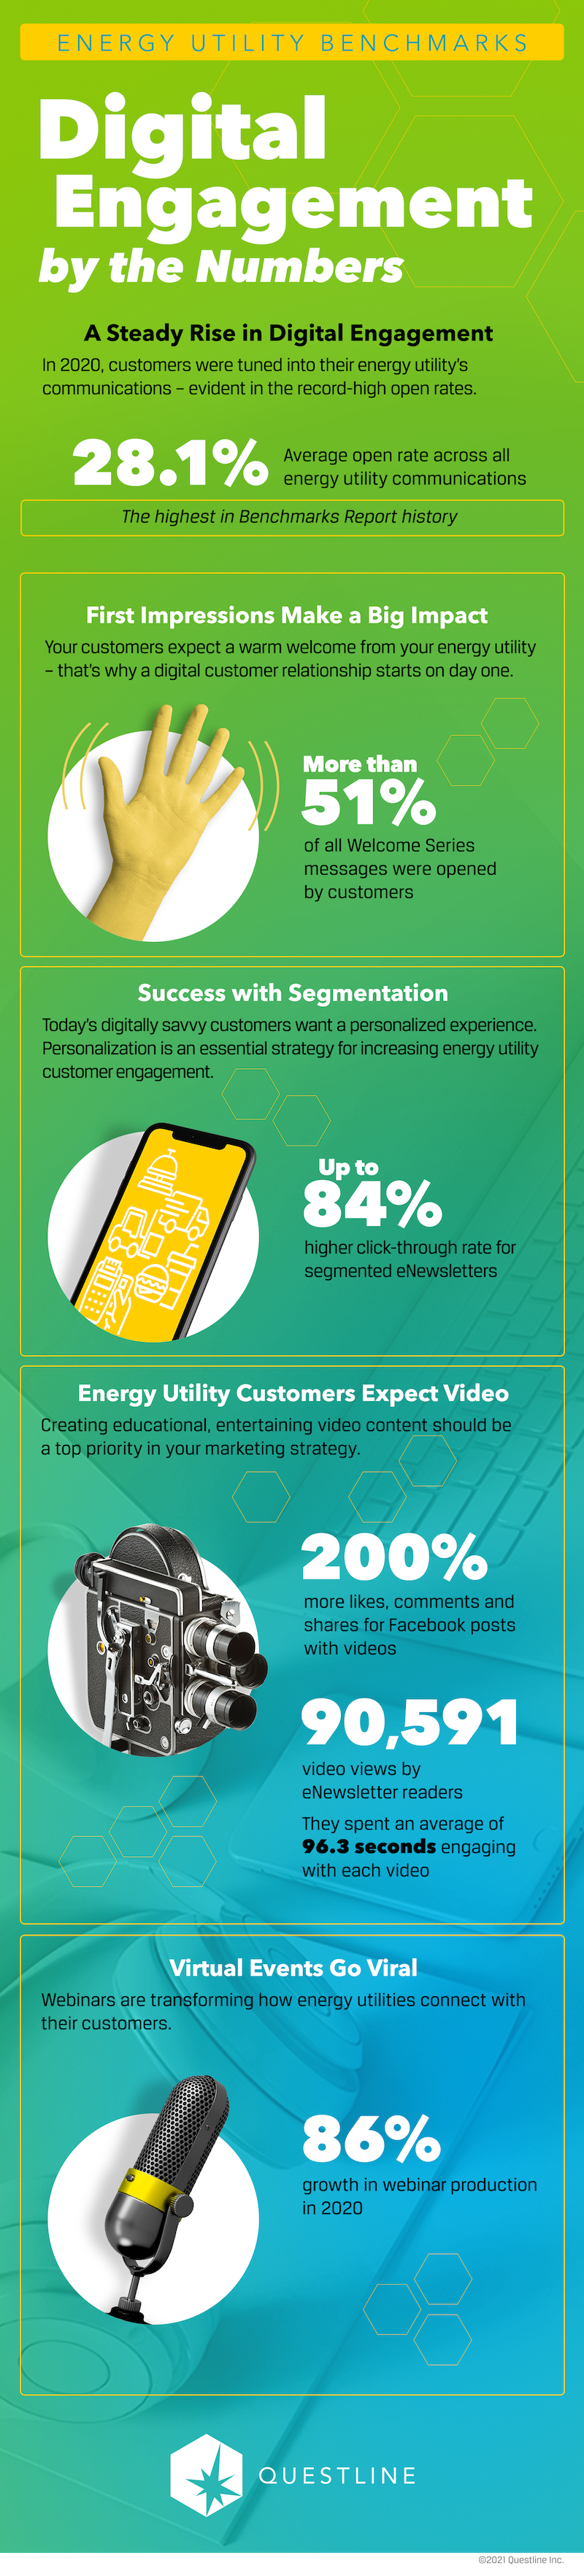 Infographic showing how energy utilities accelerate digital customer relationships with performance metrics